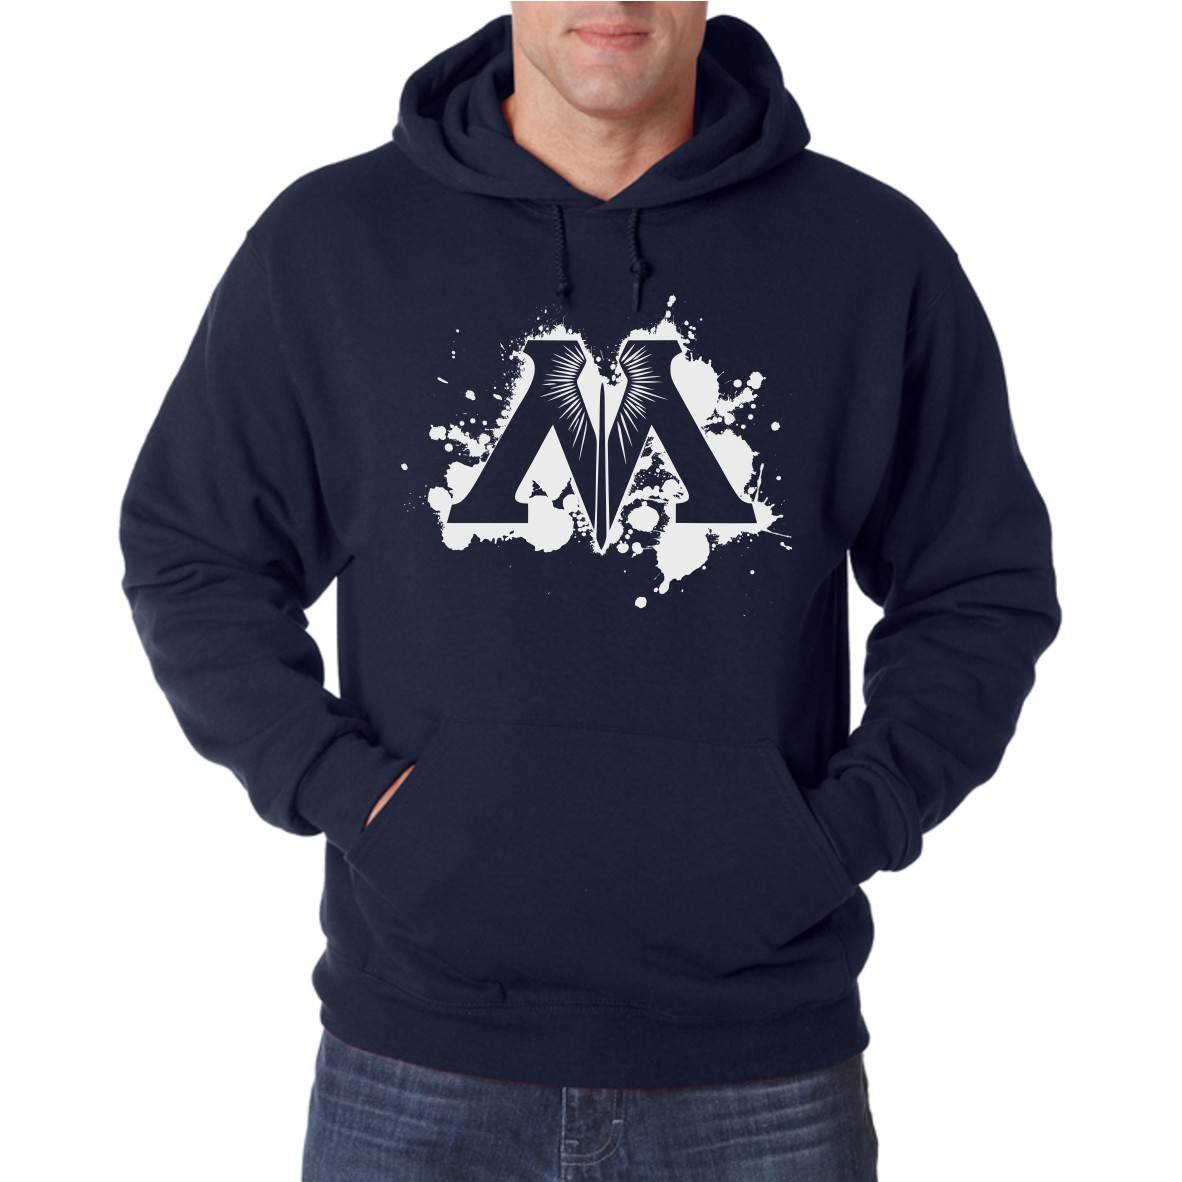 MINISTRY OF MAGIC UNISEX HOODED